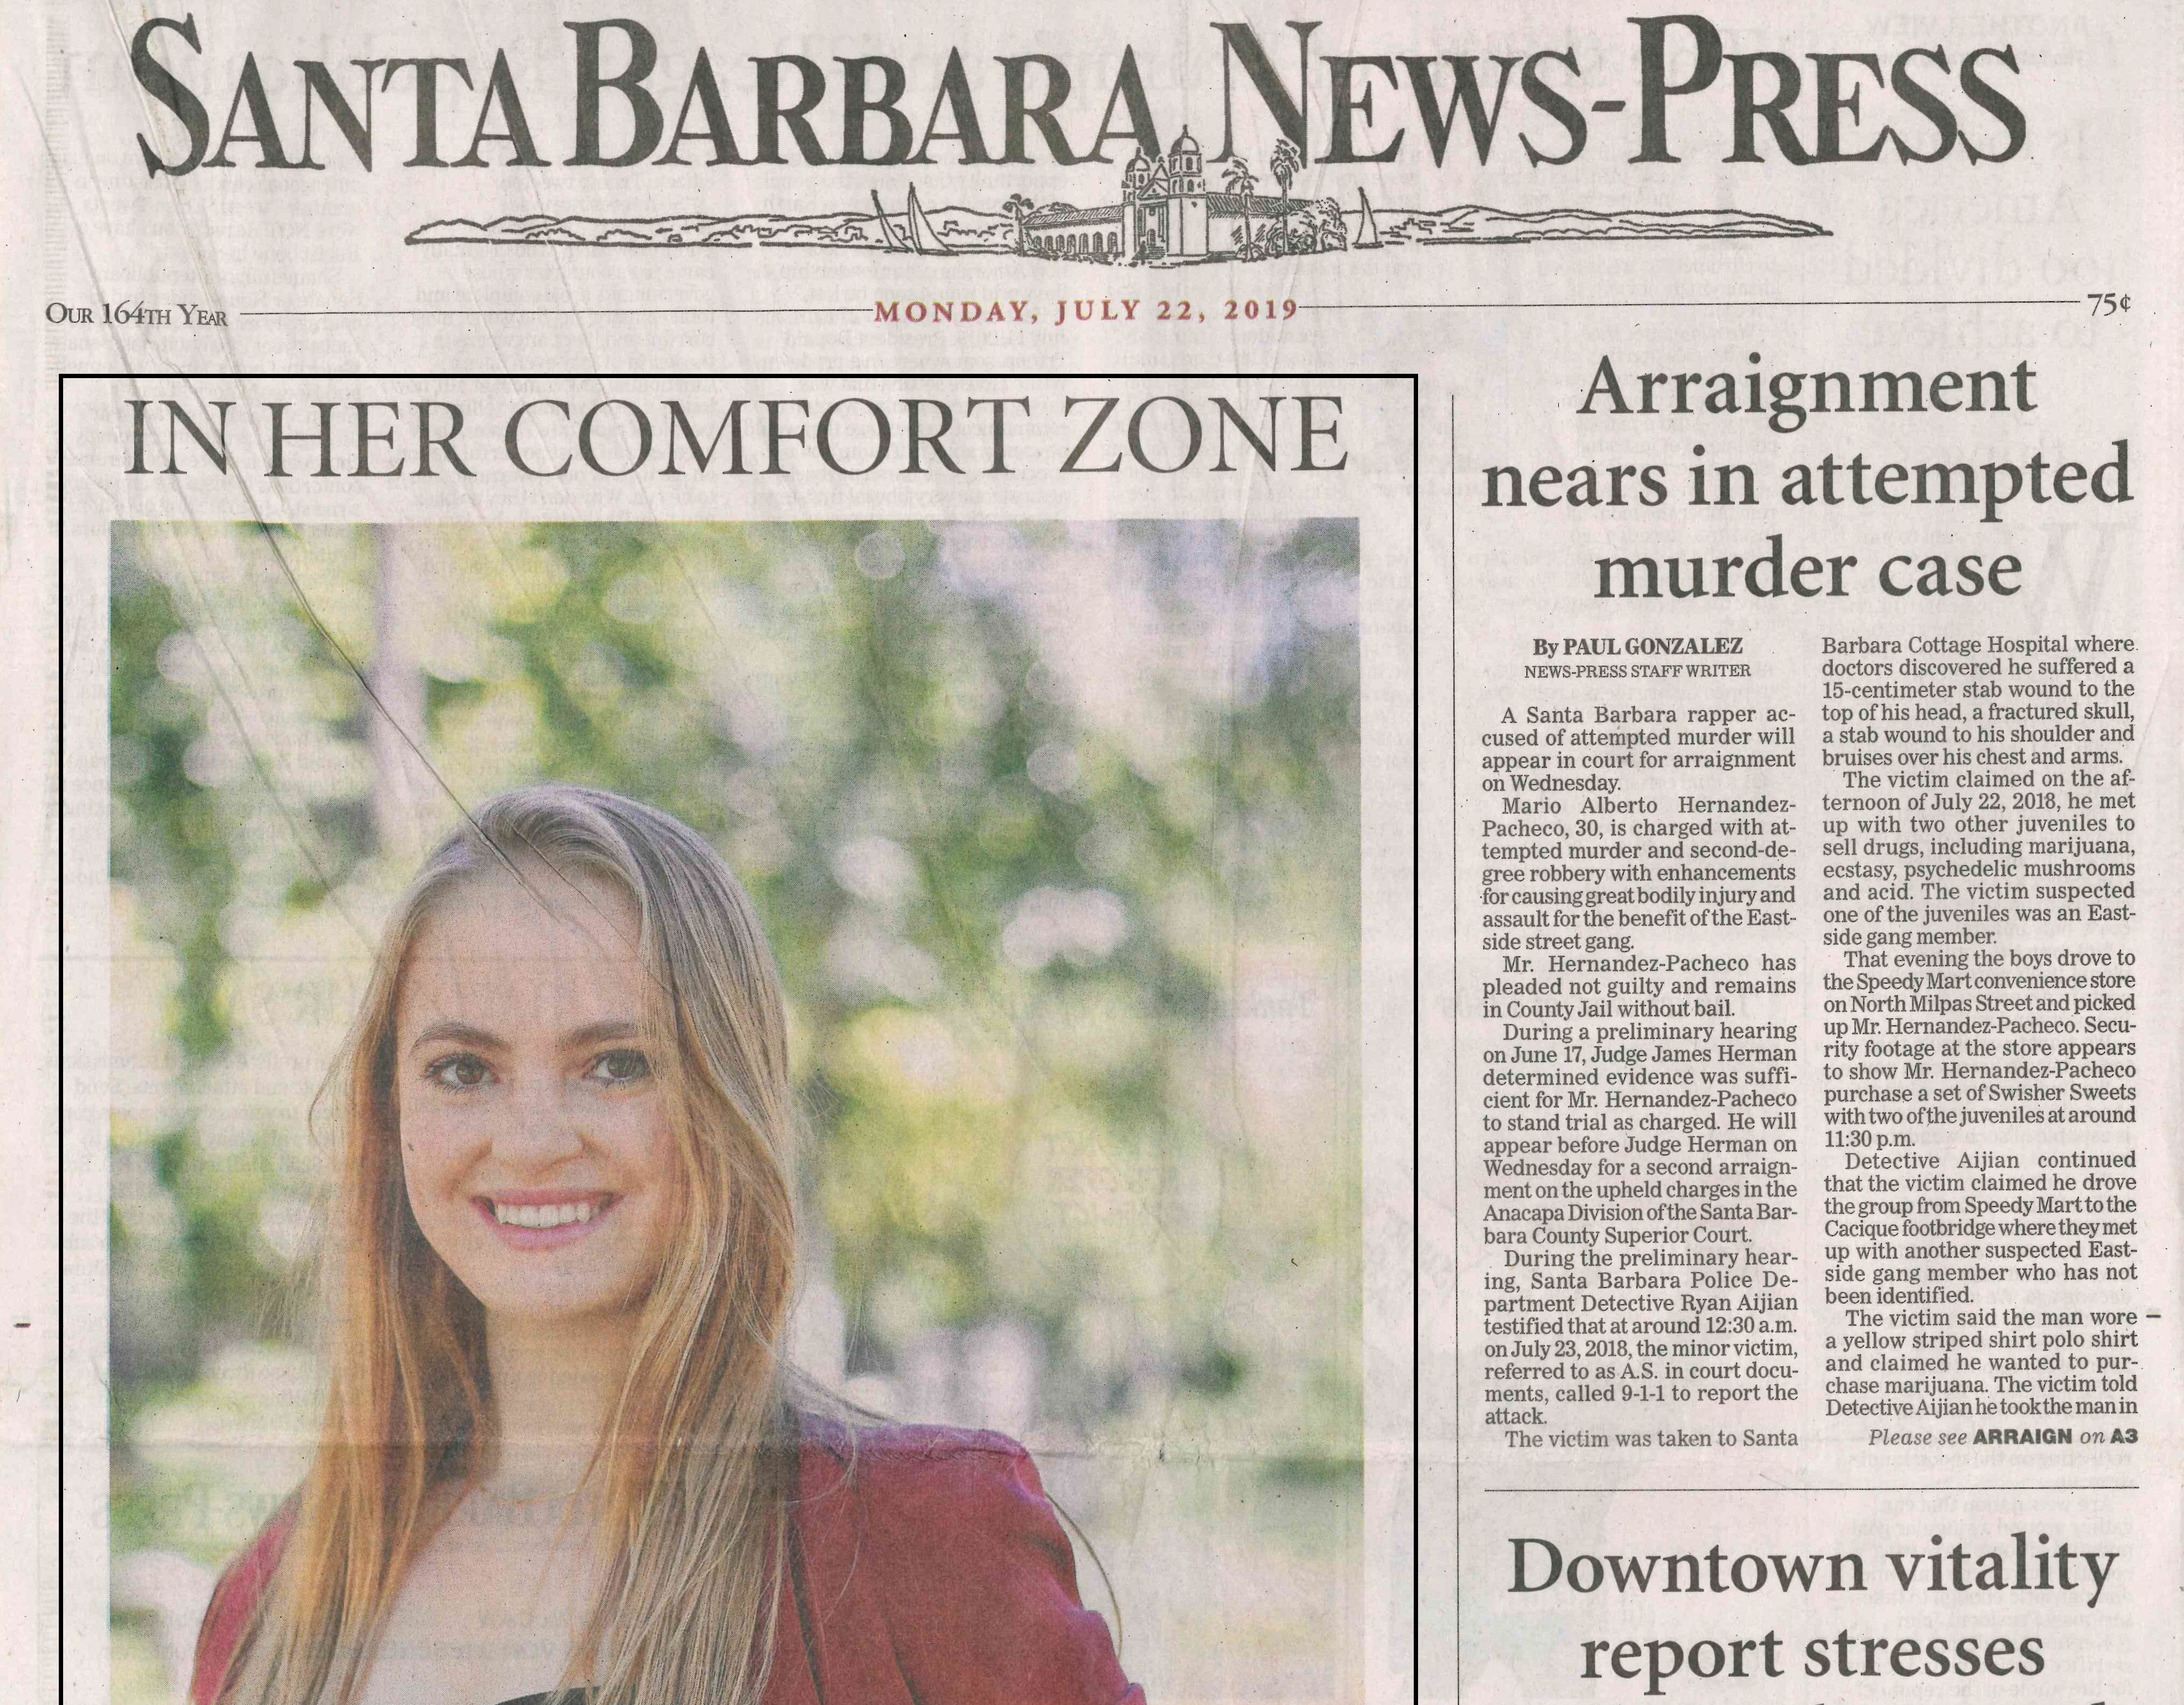 SFSB Awardees Featured in the News-Press